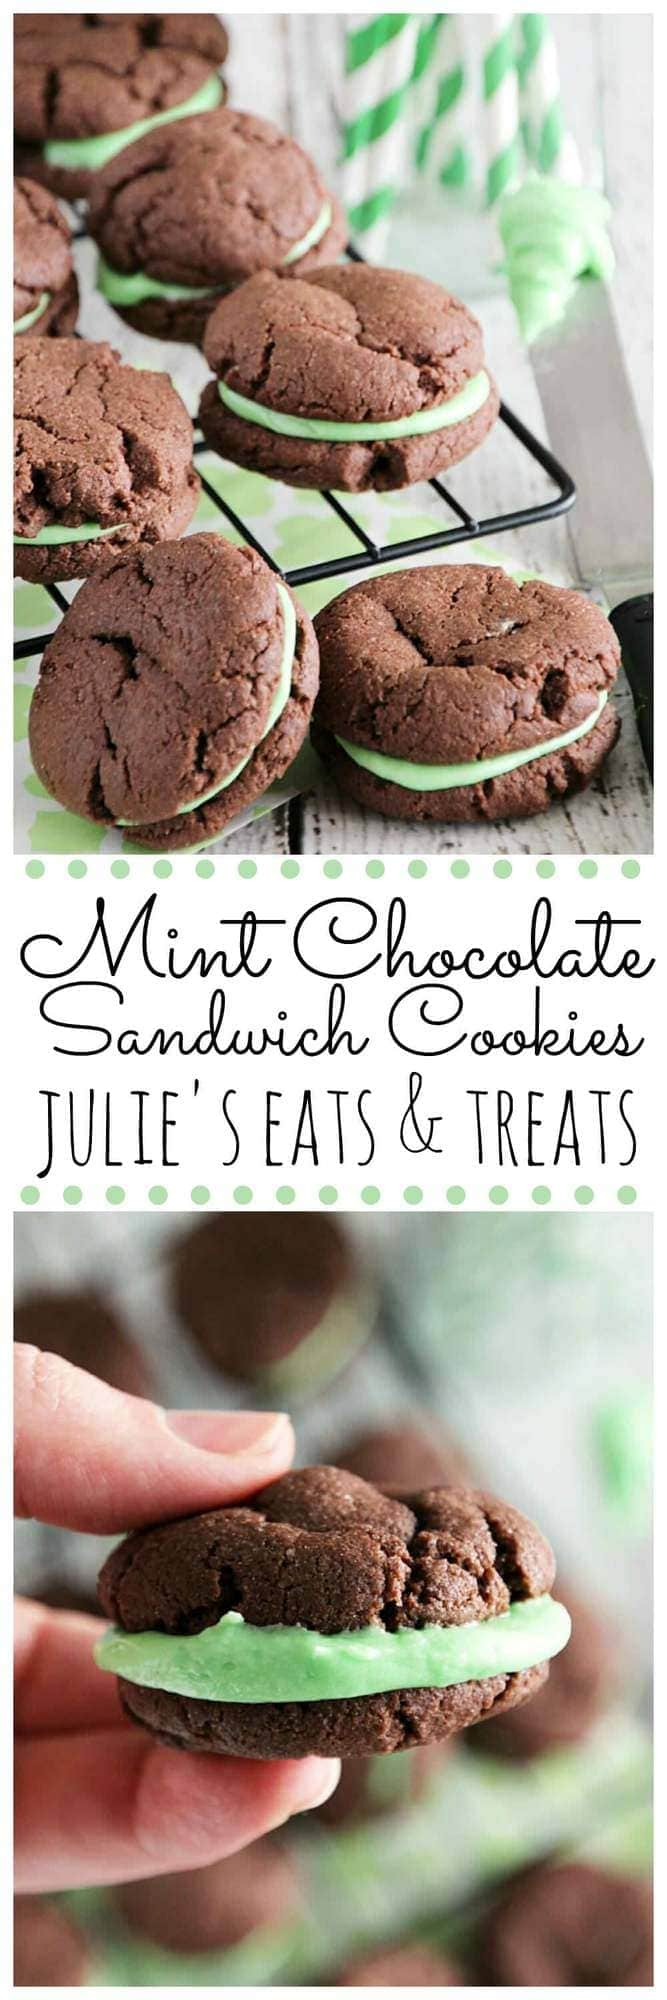 Mint Chocolate Sandwich Cookies ~ Quick& Easy, Soft, Chewy Chocolate Cookies Stuffed Creamy Mint Filling!